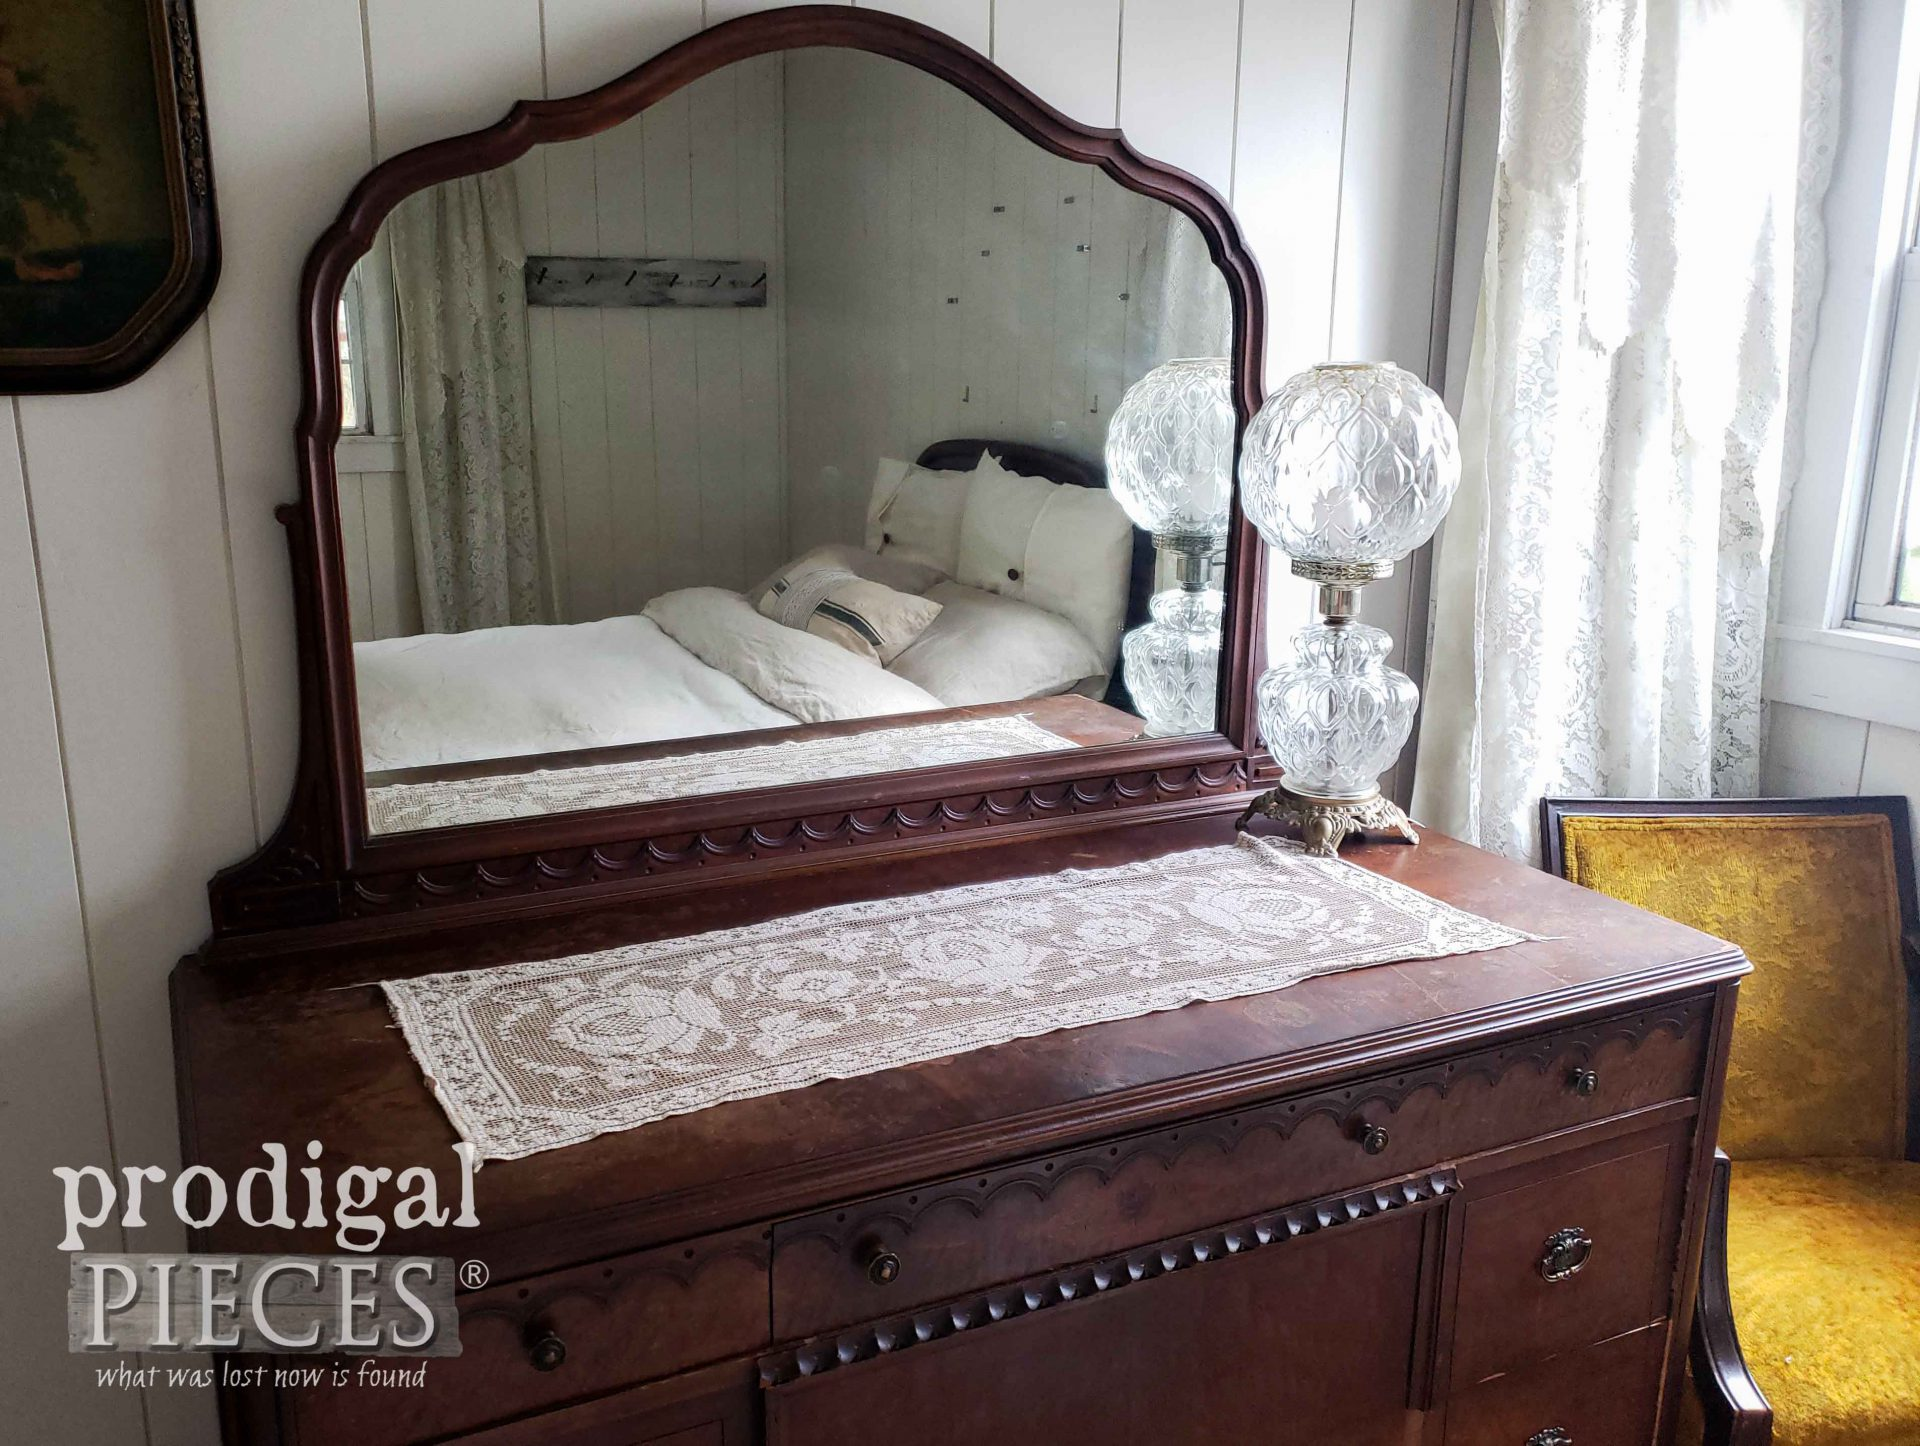 Antique Farmhouse Bedroom Dresser Before Fall Decor | prodigalpieces.com